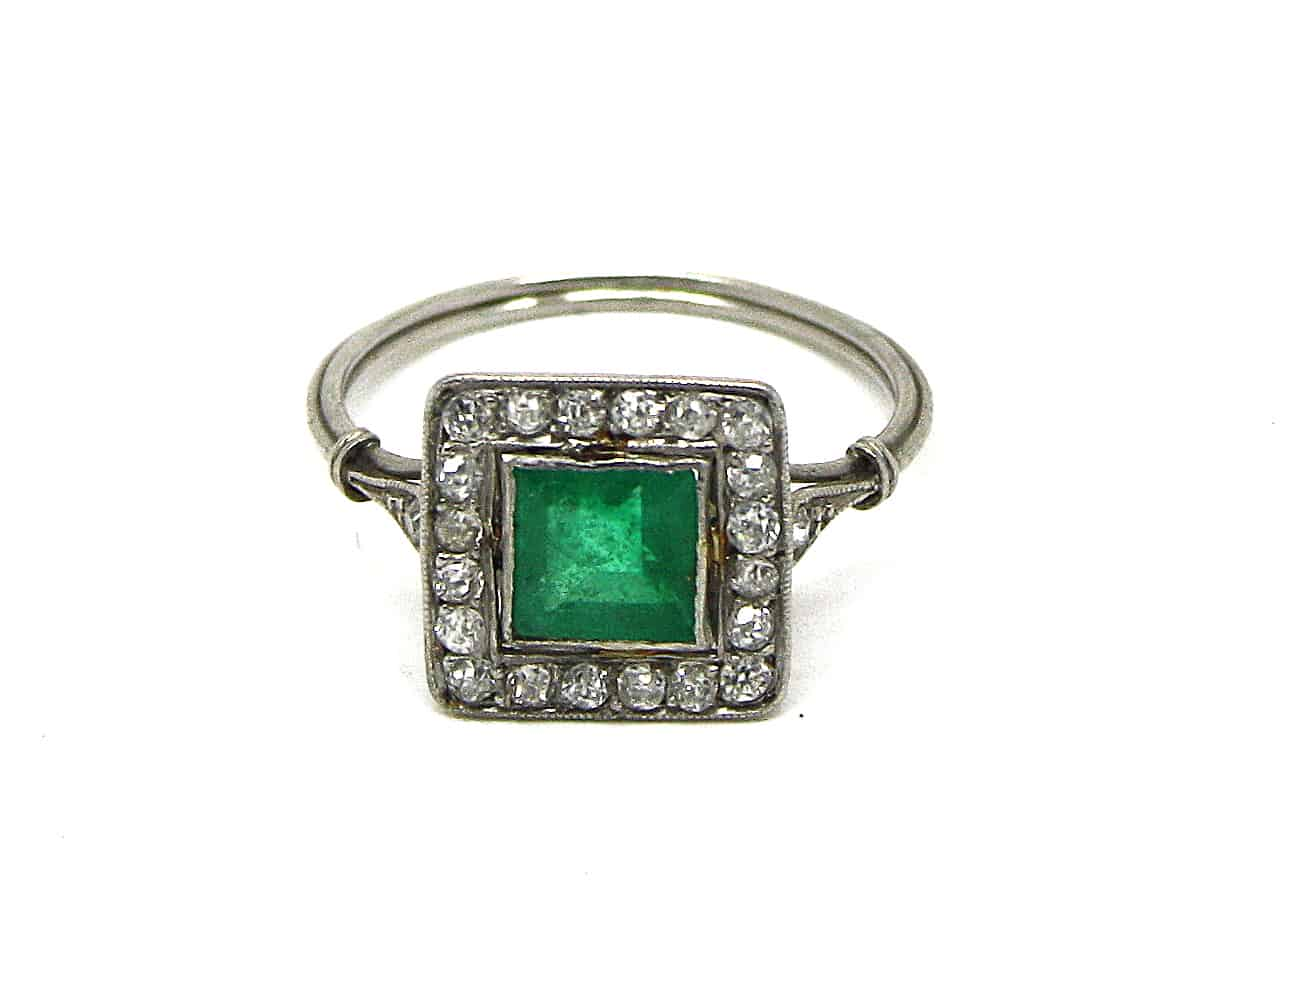 subsampling the and graff ring shop jewellery product crop false emerald cabochon with diamond diamonds upscale scale